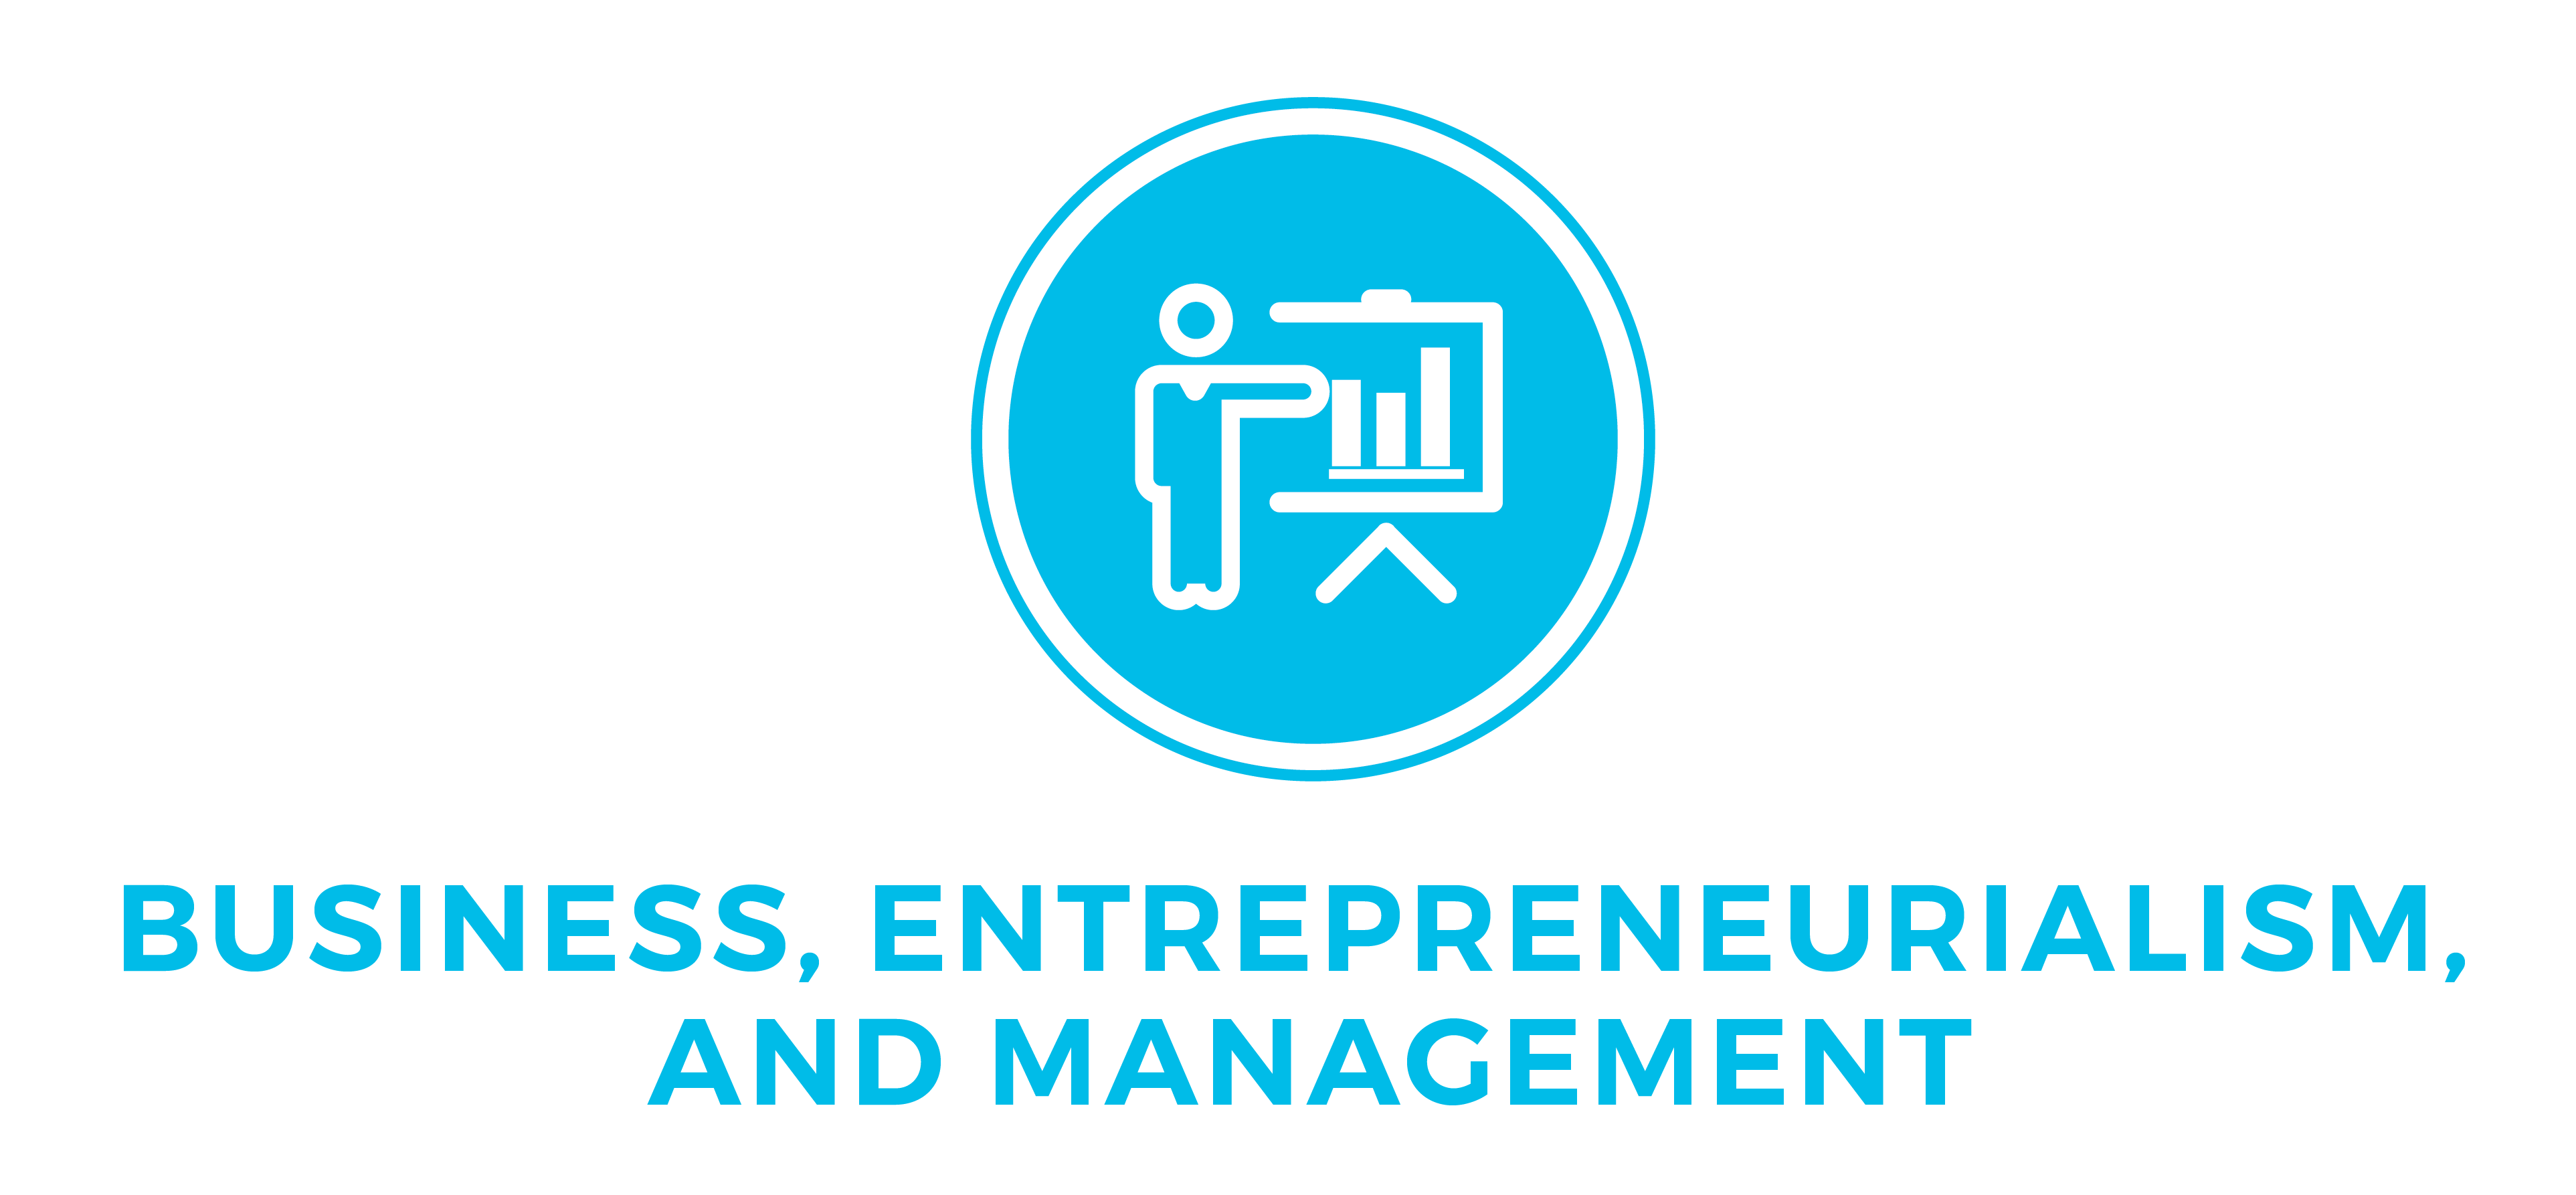 Business, Entrepreneurialism, & Management